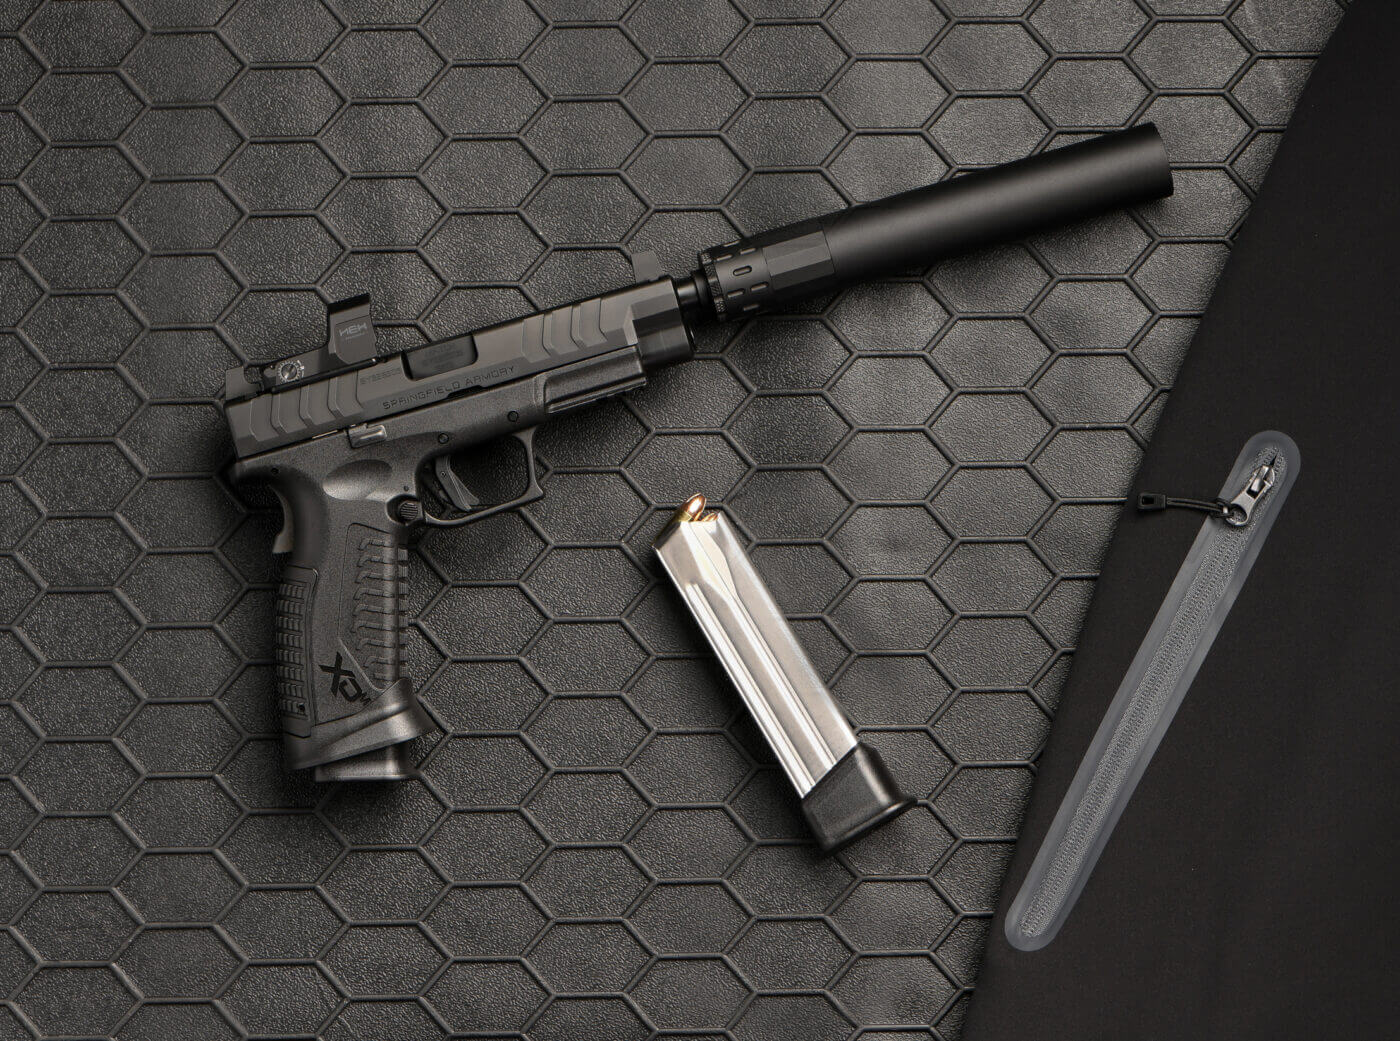 Springfield Armory XD-M Elite OSP pistol with HEX Dragonfly optic